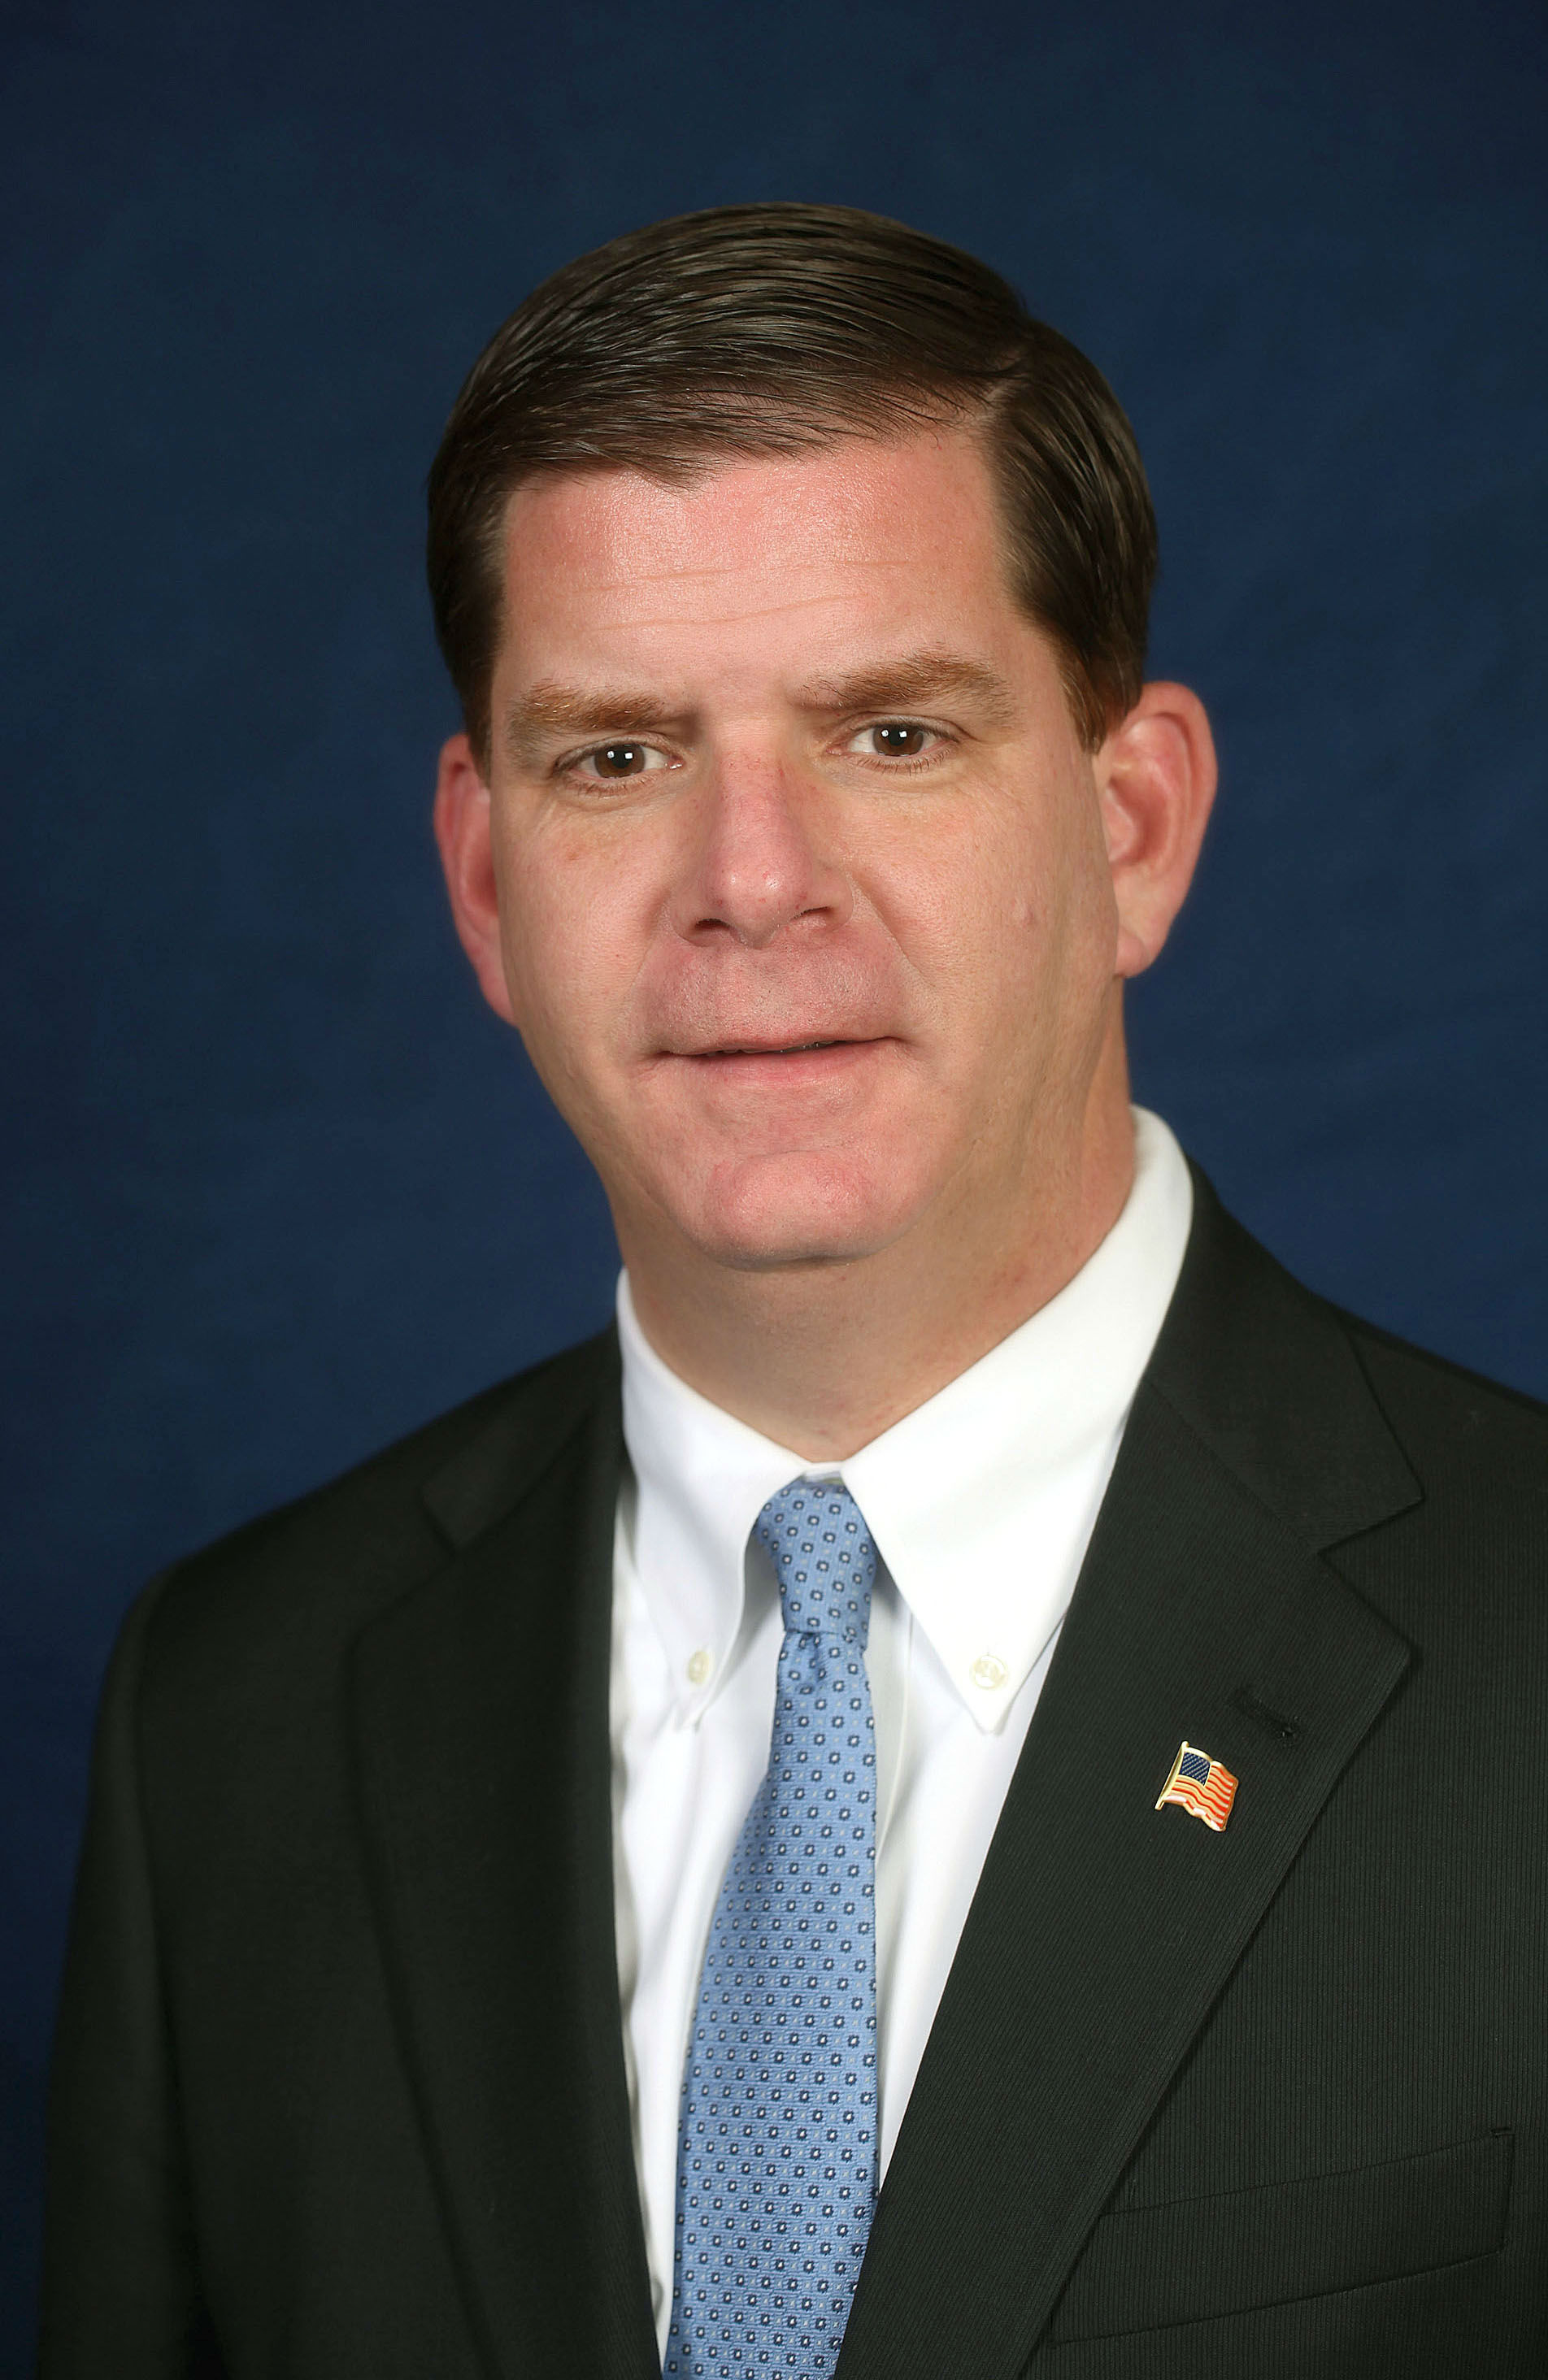 marty walsh height